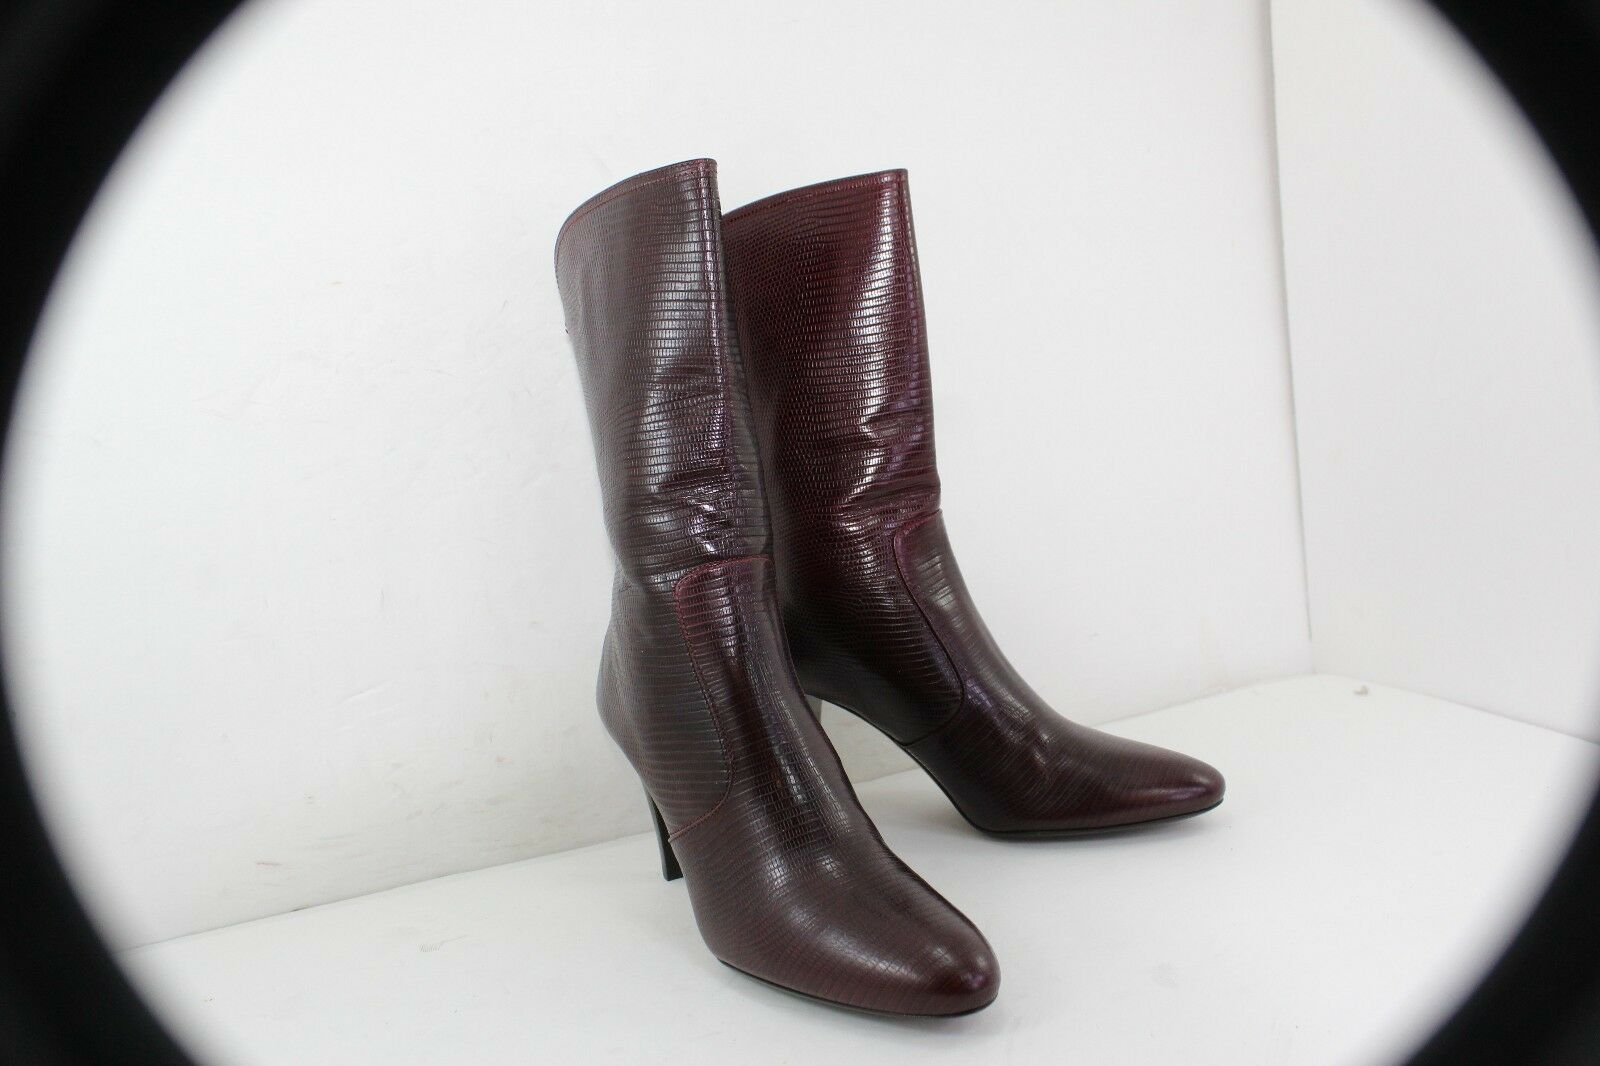 COLE HAAN Stiefel Größe 8 B braunS NEW MADE IN ITALY MSRP   300